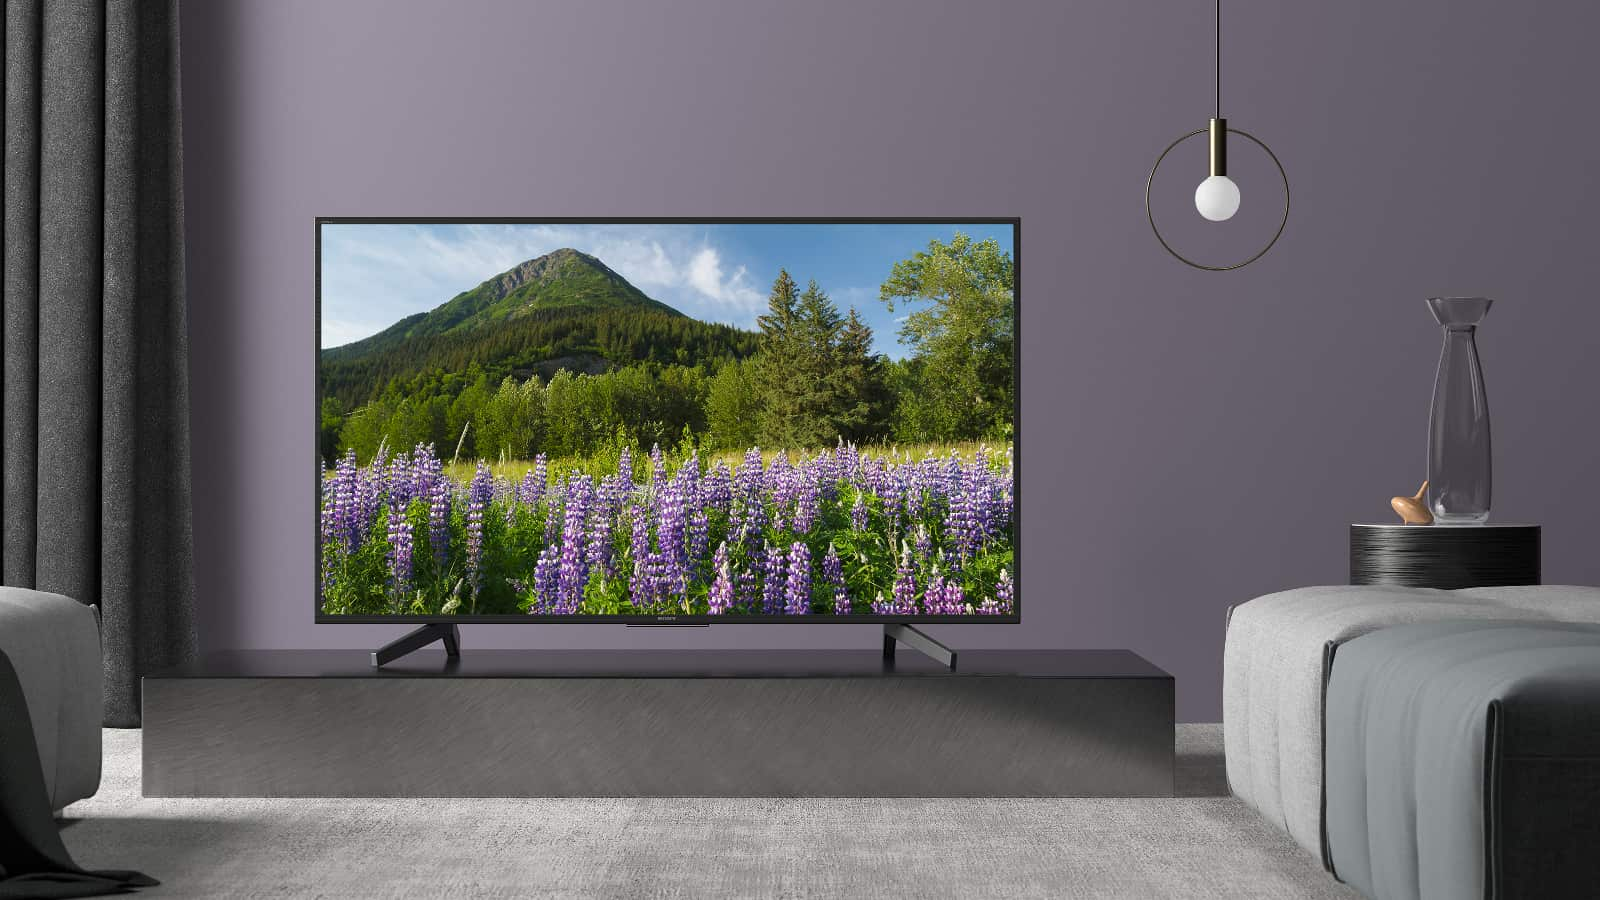 sony-bravia-xf70-series-4k-hdr-led-tv